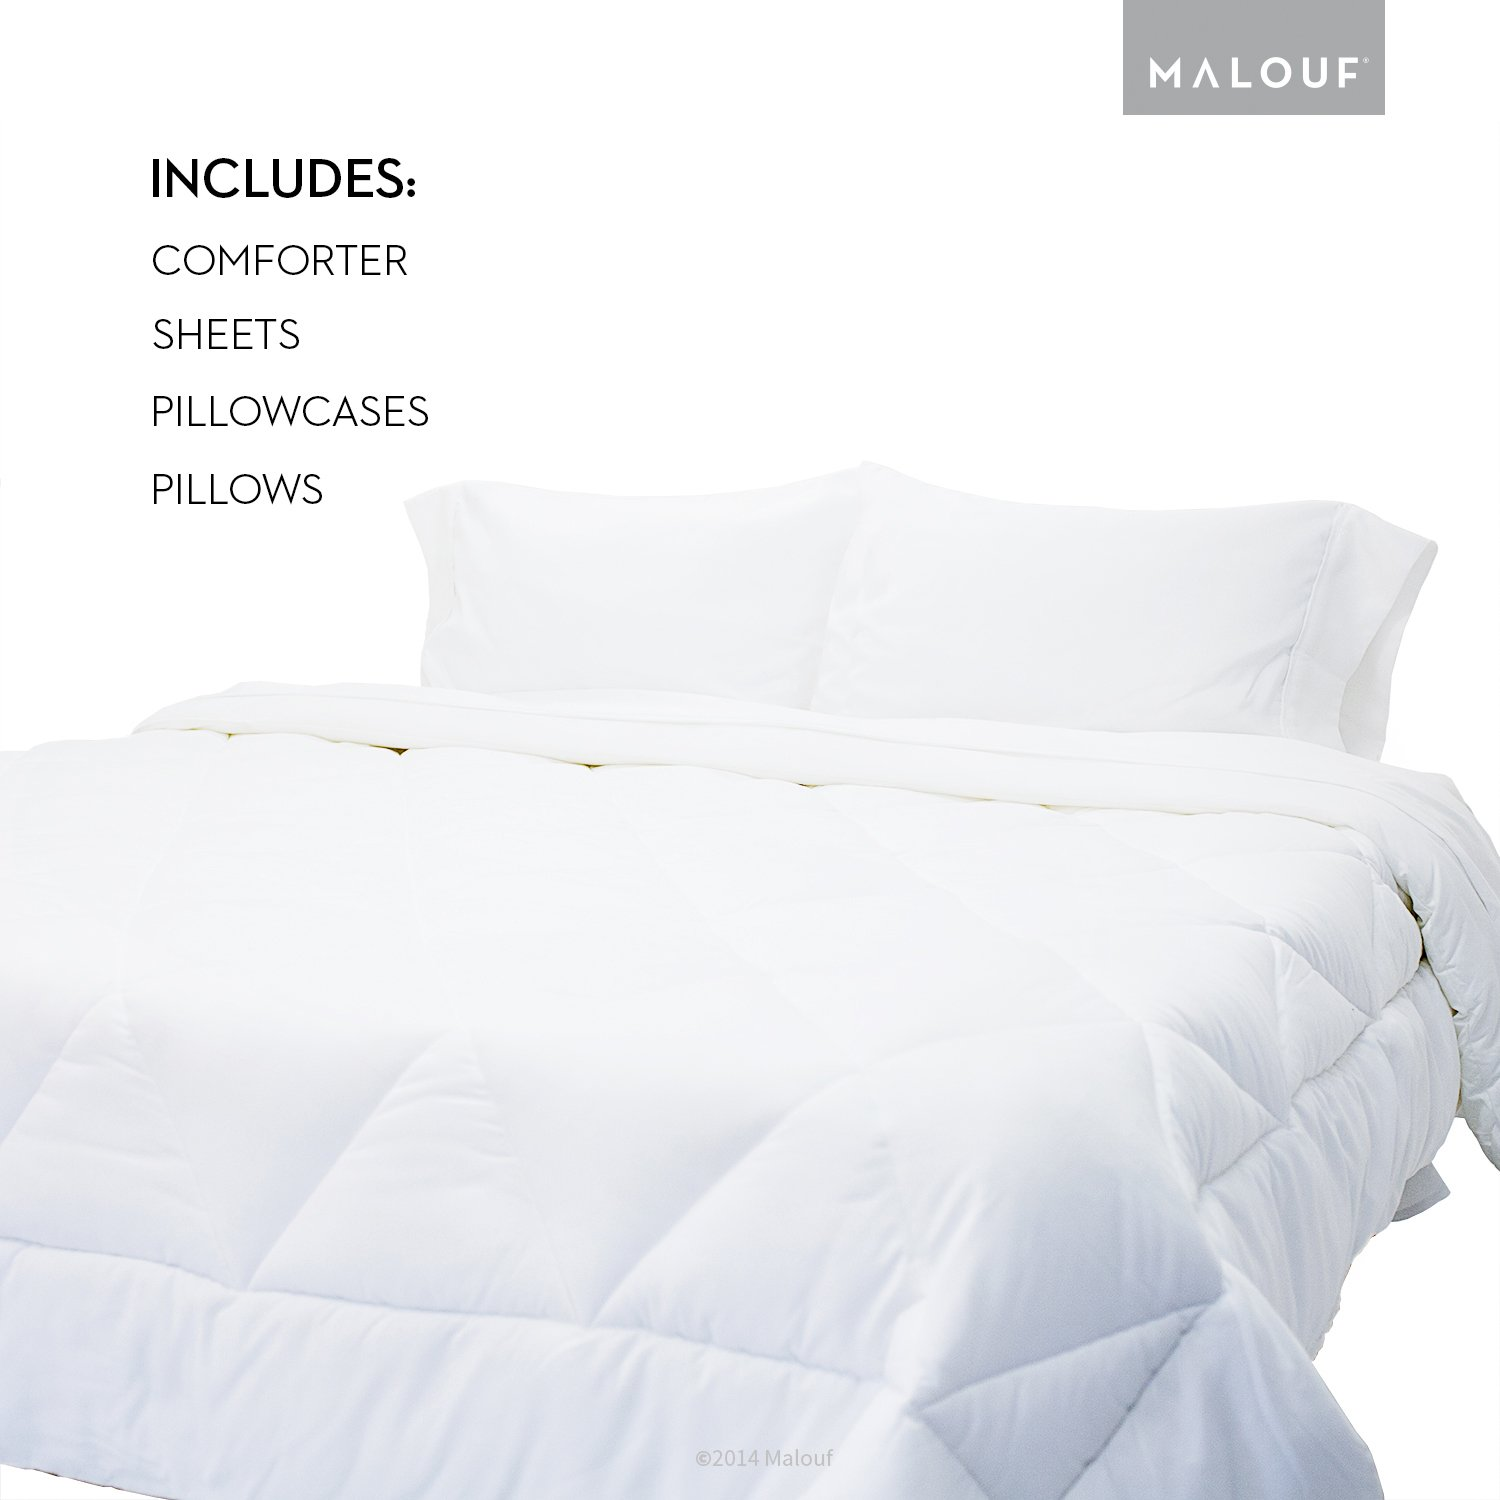 WOVEN Reversible Bed In a Bag Complete Bedding Set - Split Queen - Driftwood/Coffee by MALOUF (Image #6)